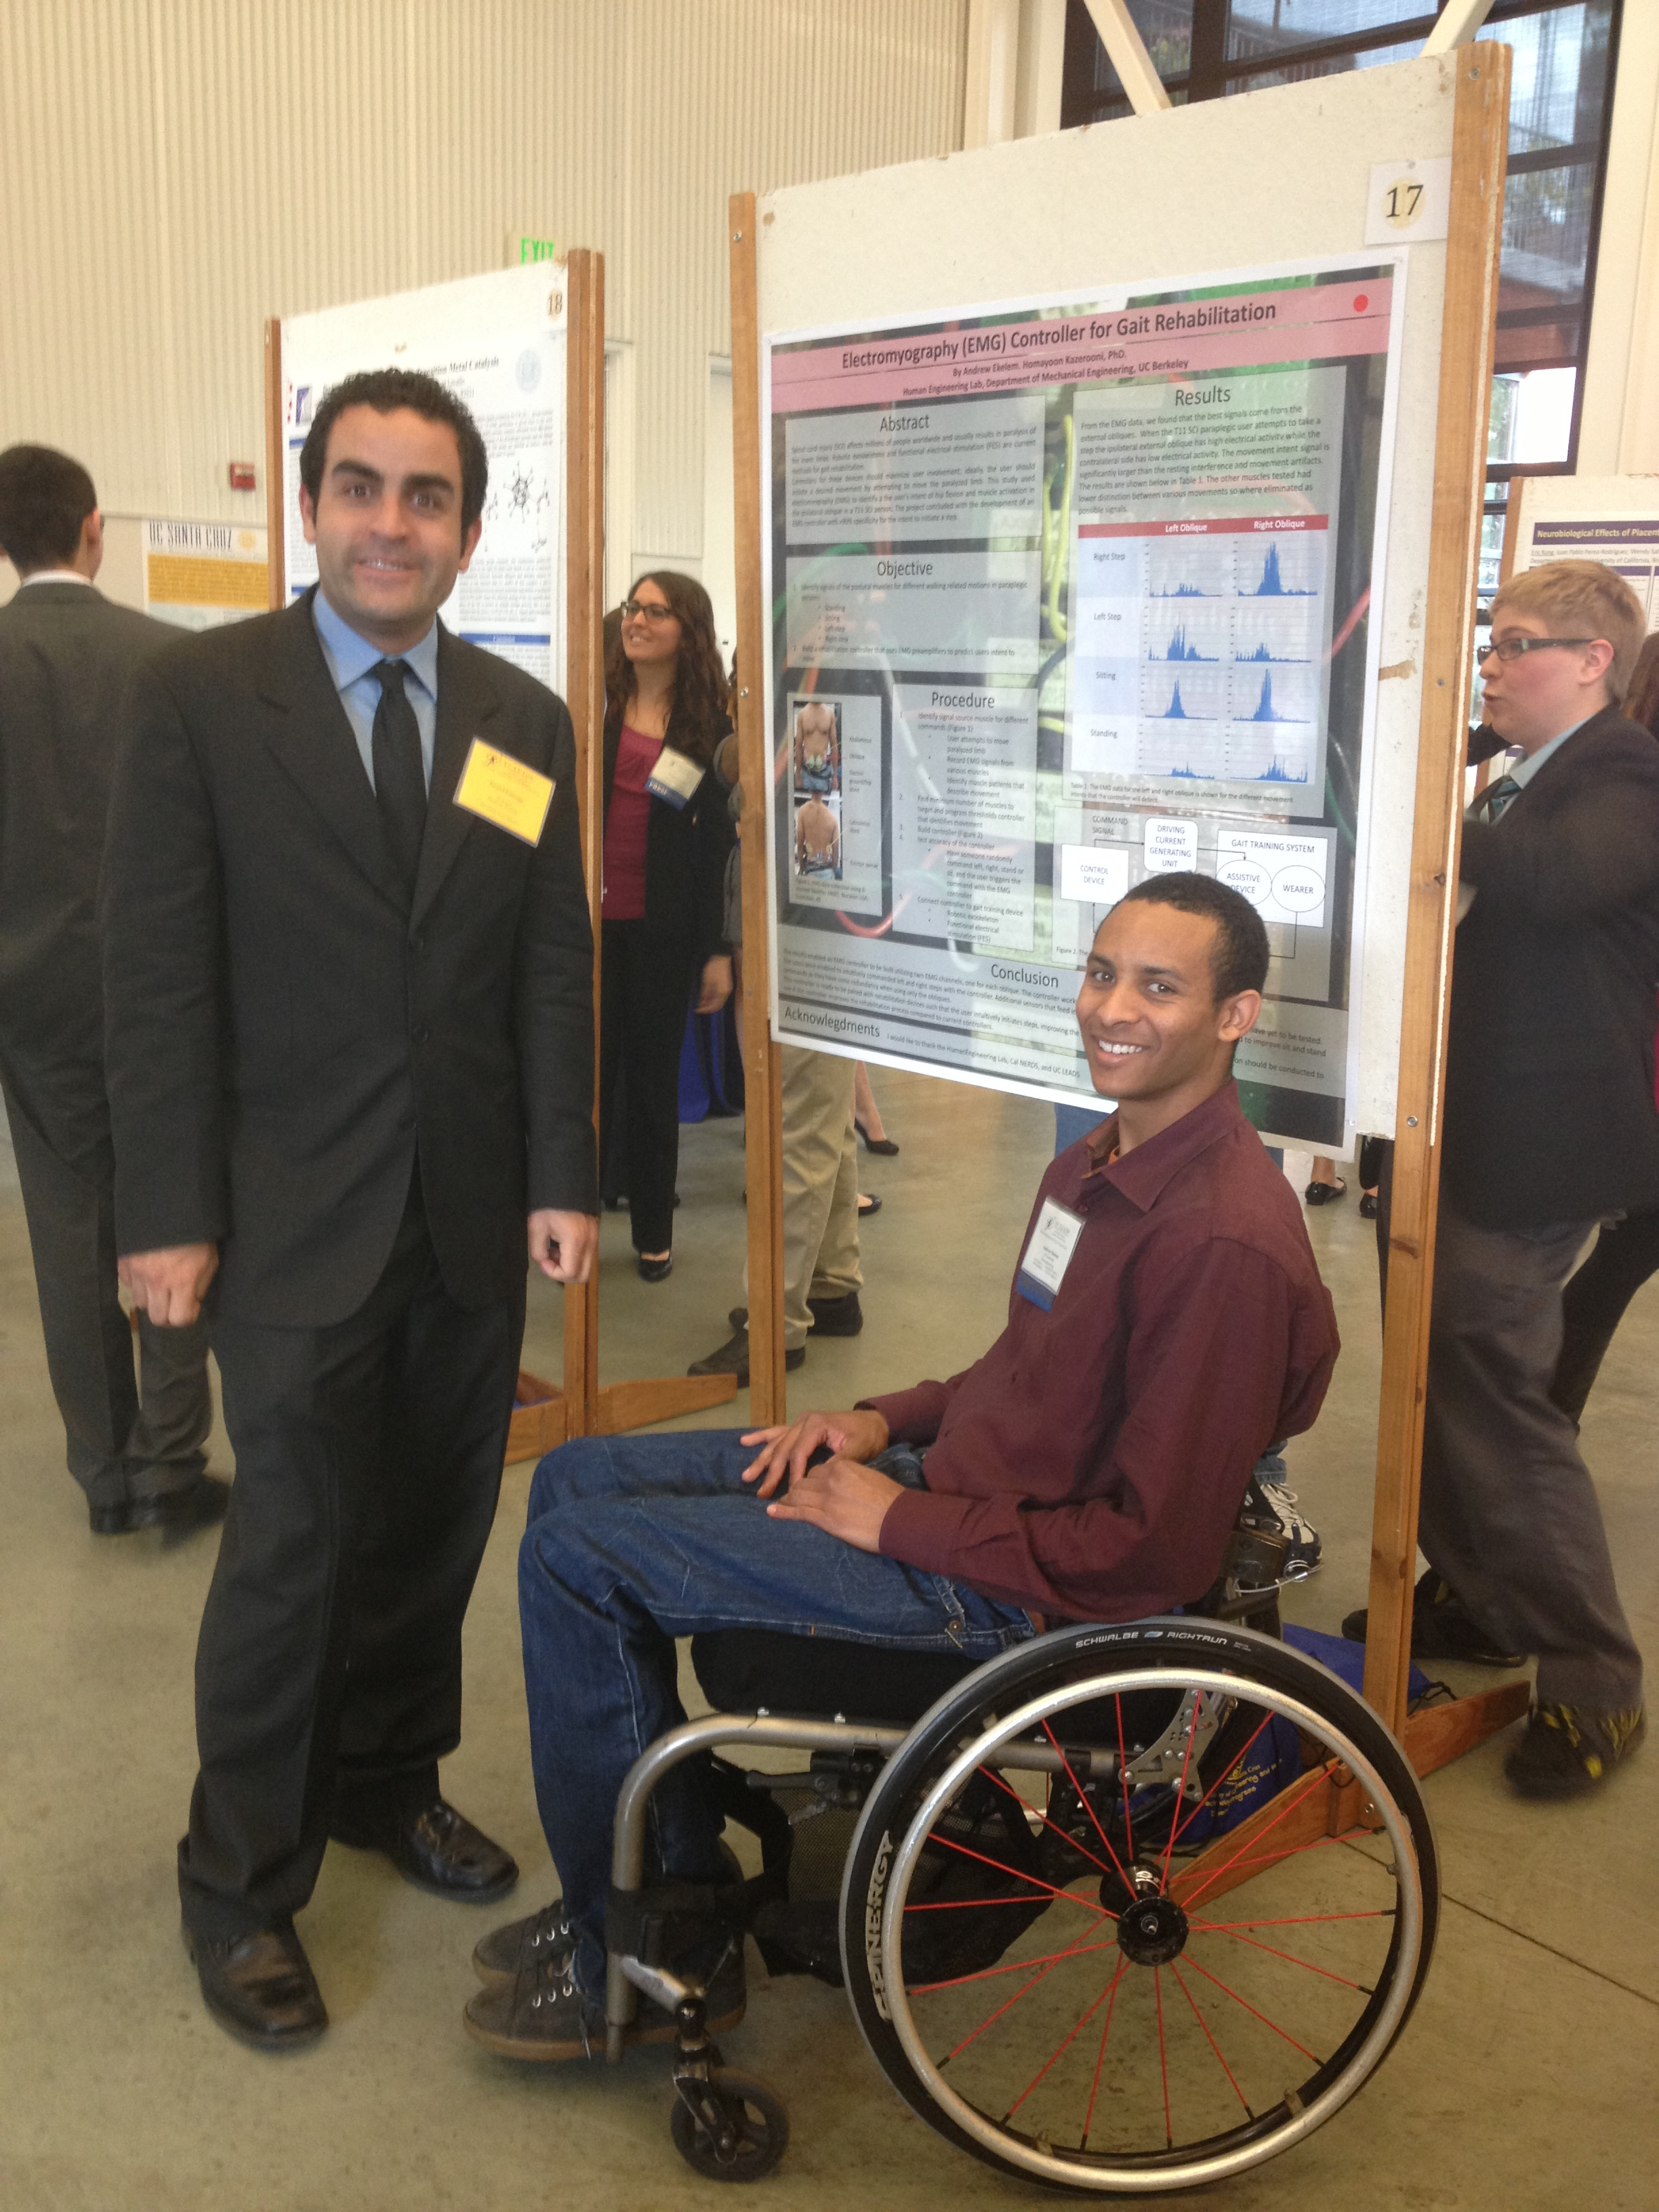 UC LEAD Scholar Andrew presenting his research at statewide symposium